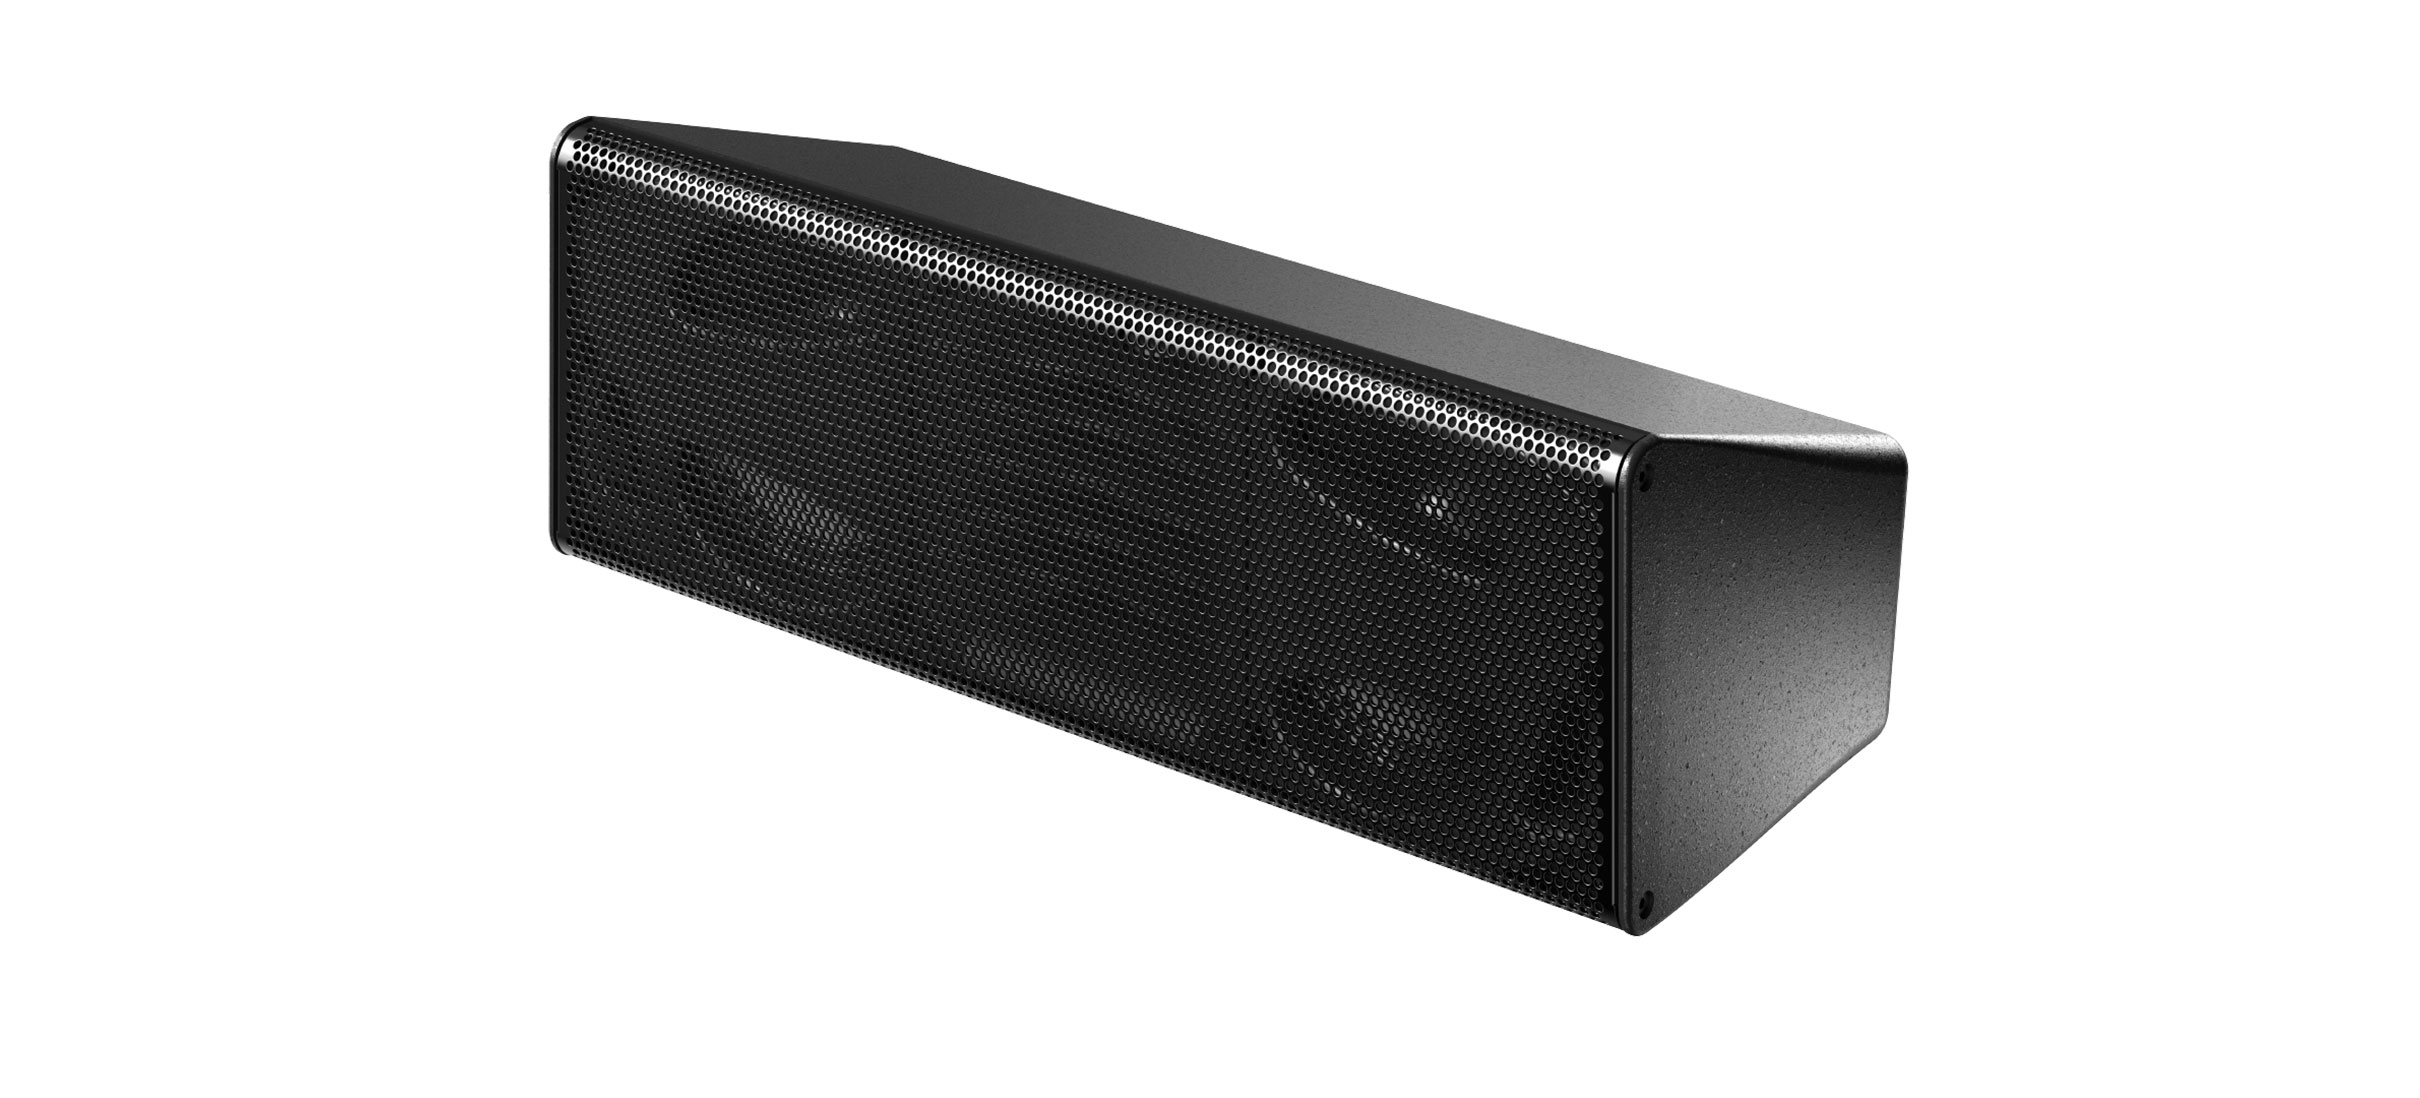 The new d&b audiotechnik 44S loudspeaker